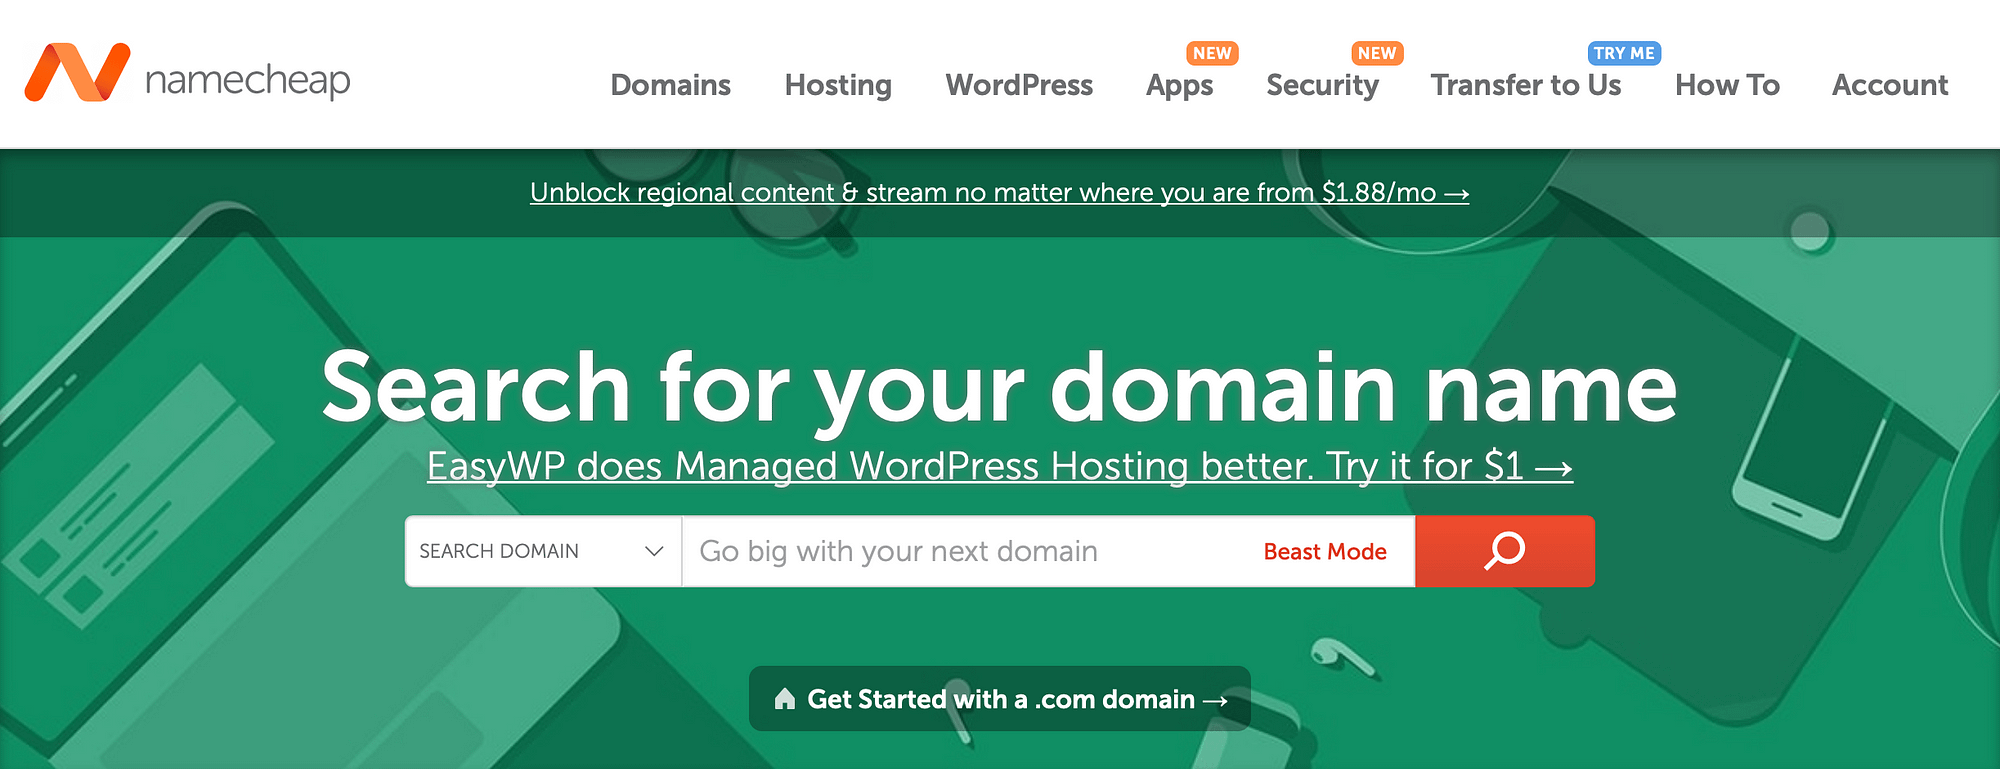 Namecheap is one of the best services to register a domain name